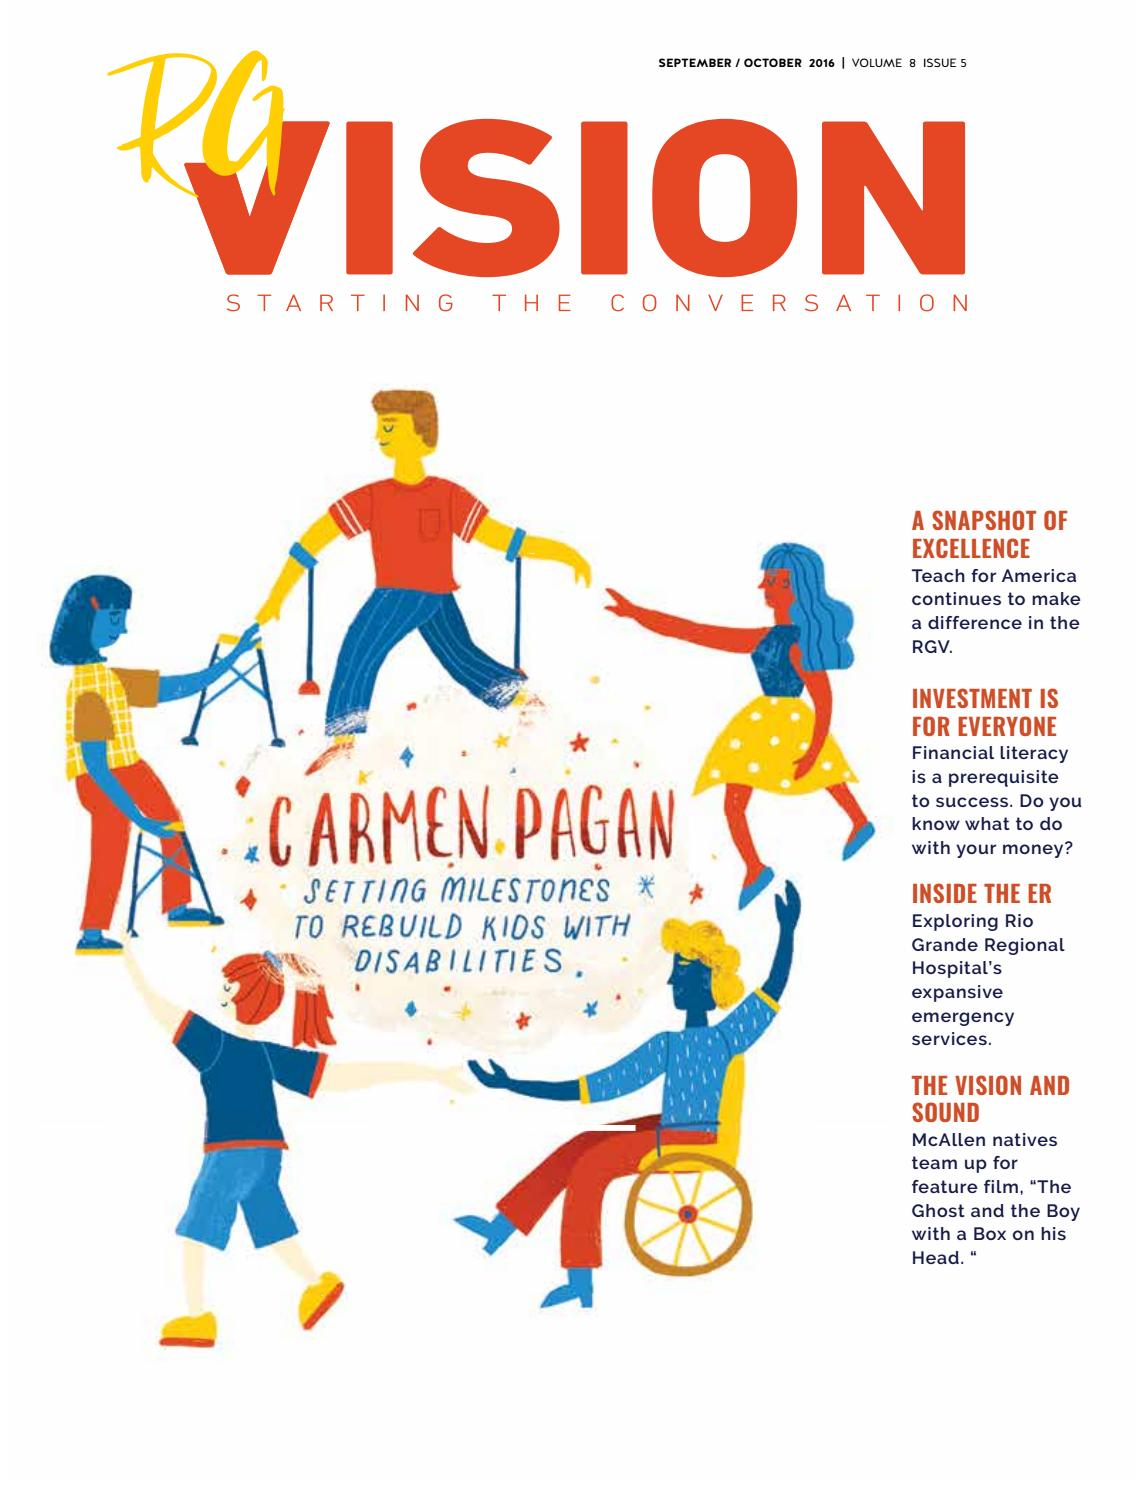 September october 2016 rgvision magazine by rgvision magazine issuu